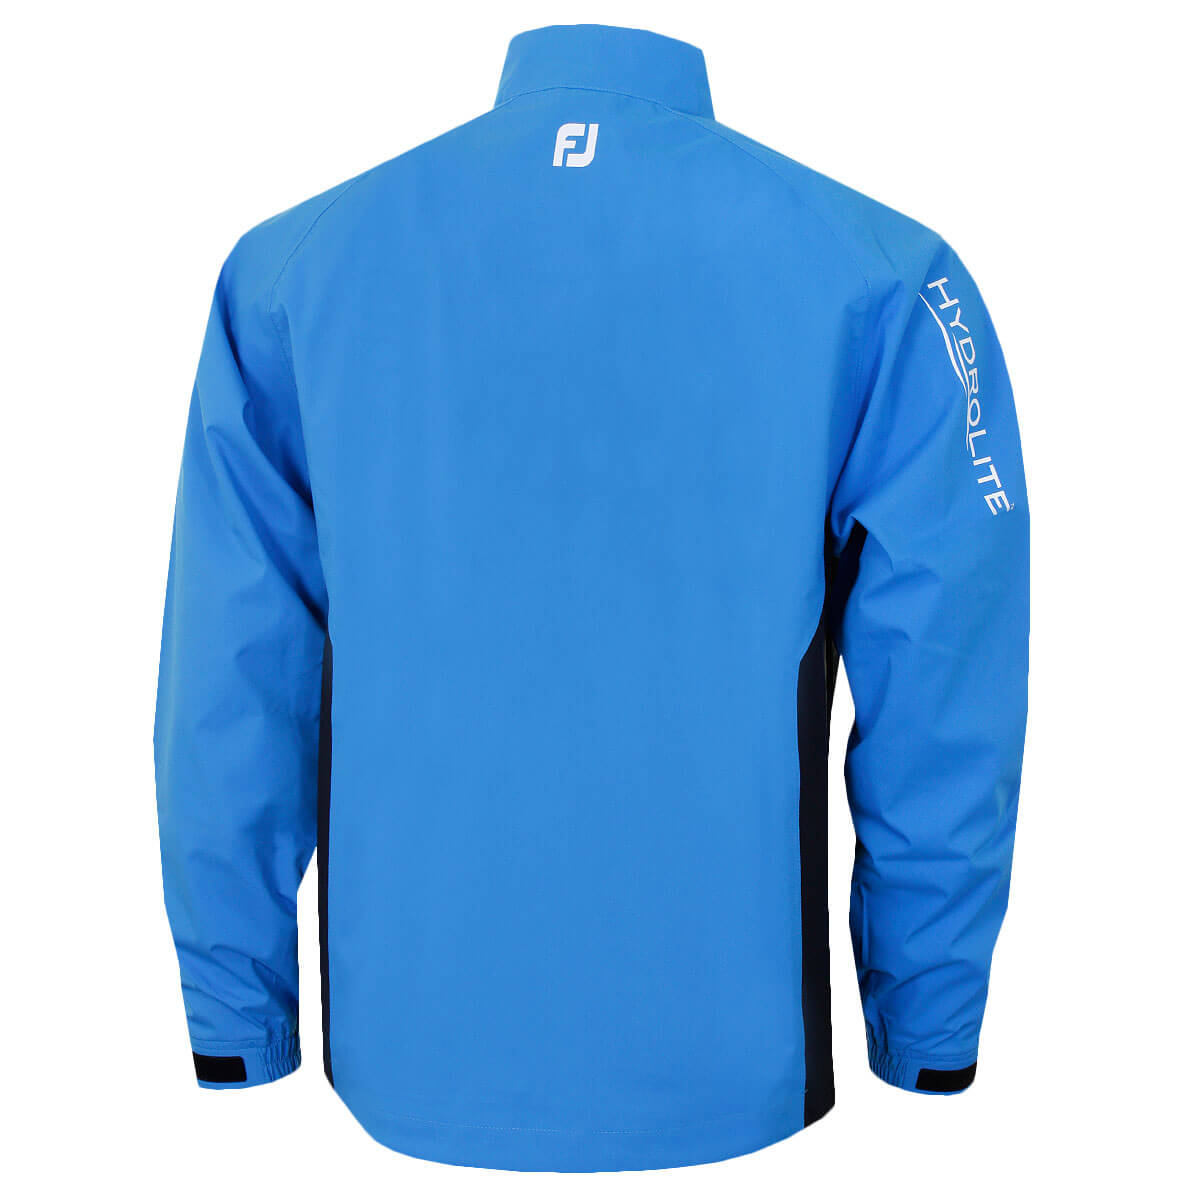 Footjoy-Mens-Hydrolite-Rain-Waterproof-Lightweight-FJ-Golf-Jacket-47-OFF-RRP thumbnail 7